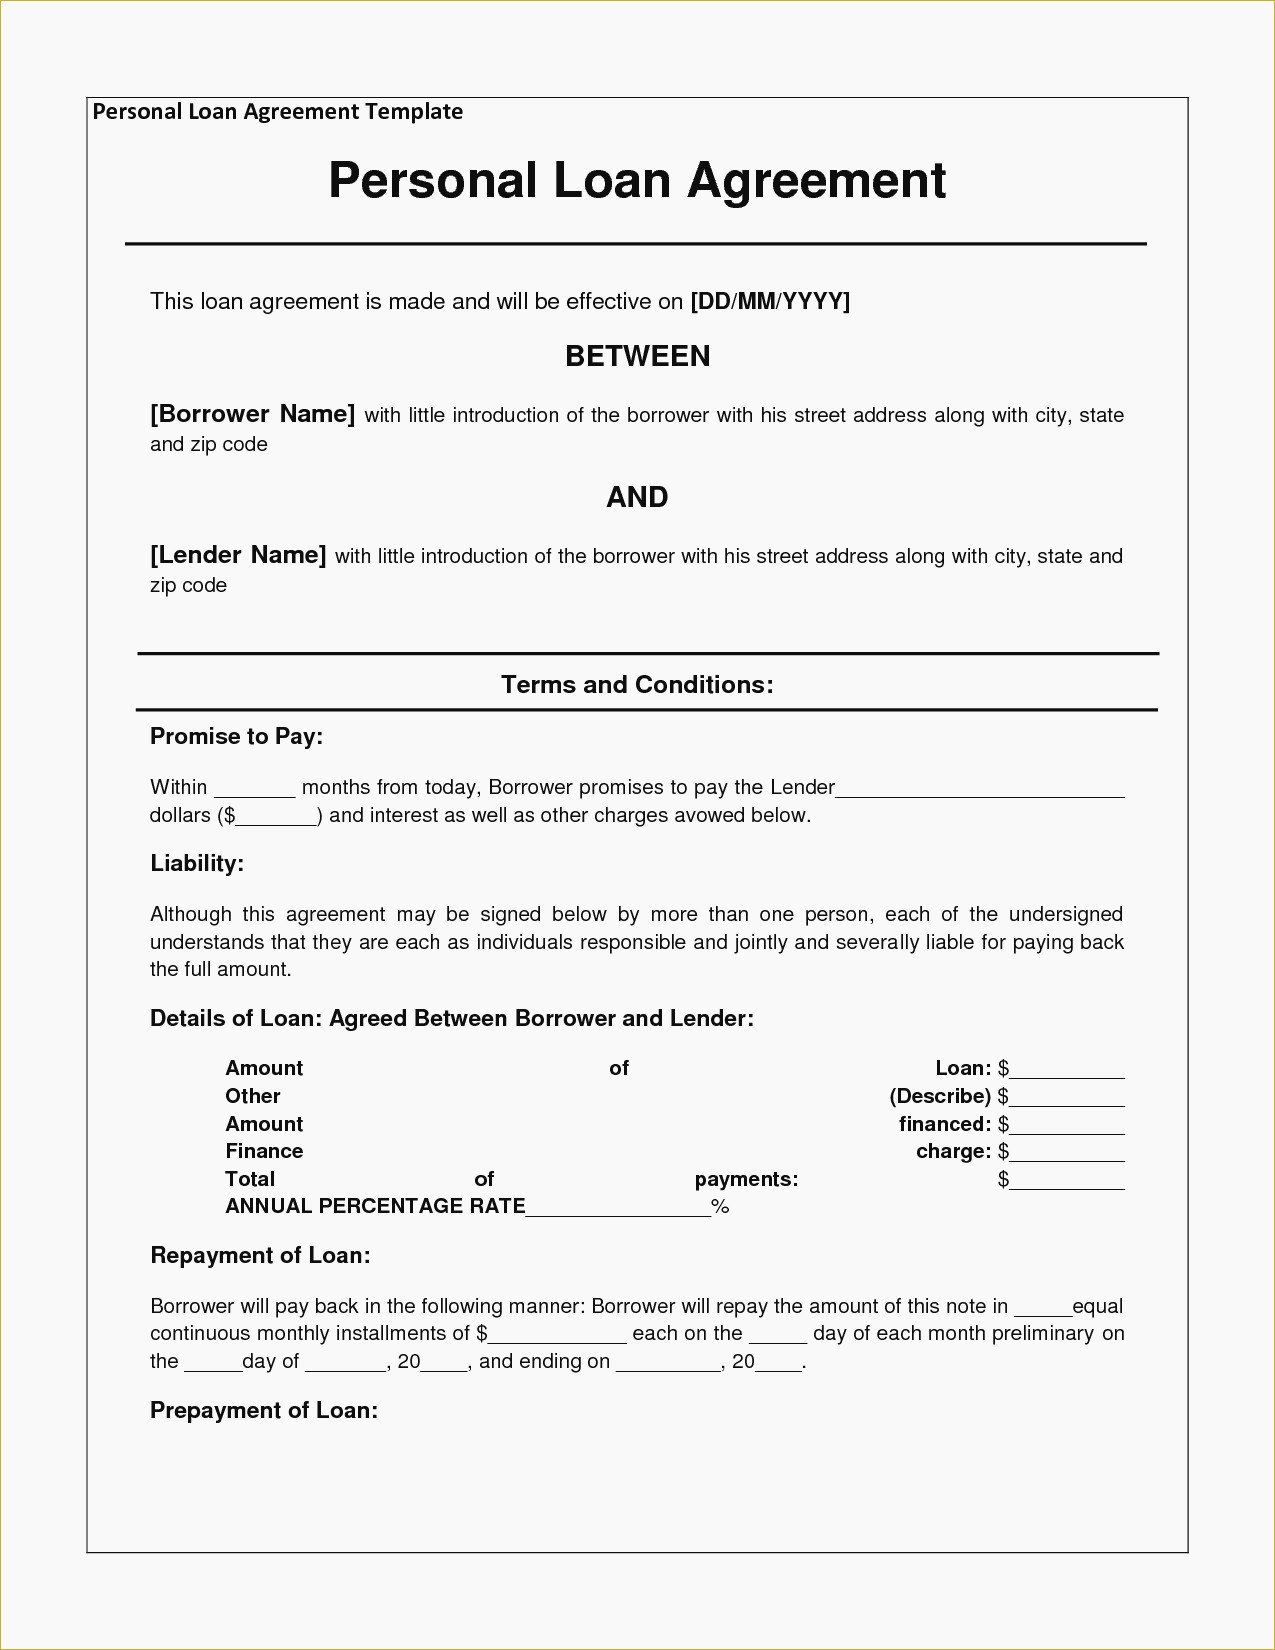 Free Legal Forms Online Printable | Sample Documents For Free Legal - Free Legal Forms Online Printable